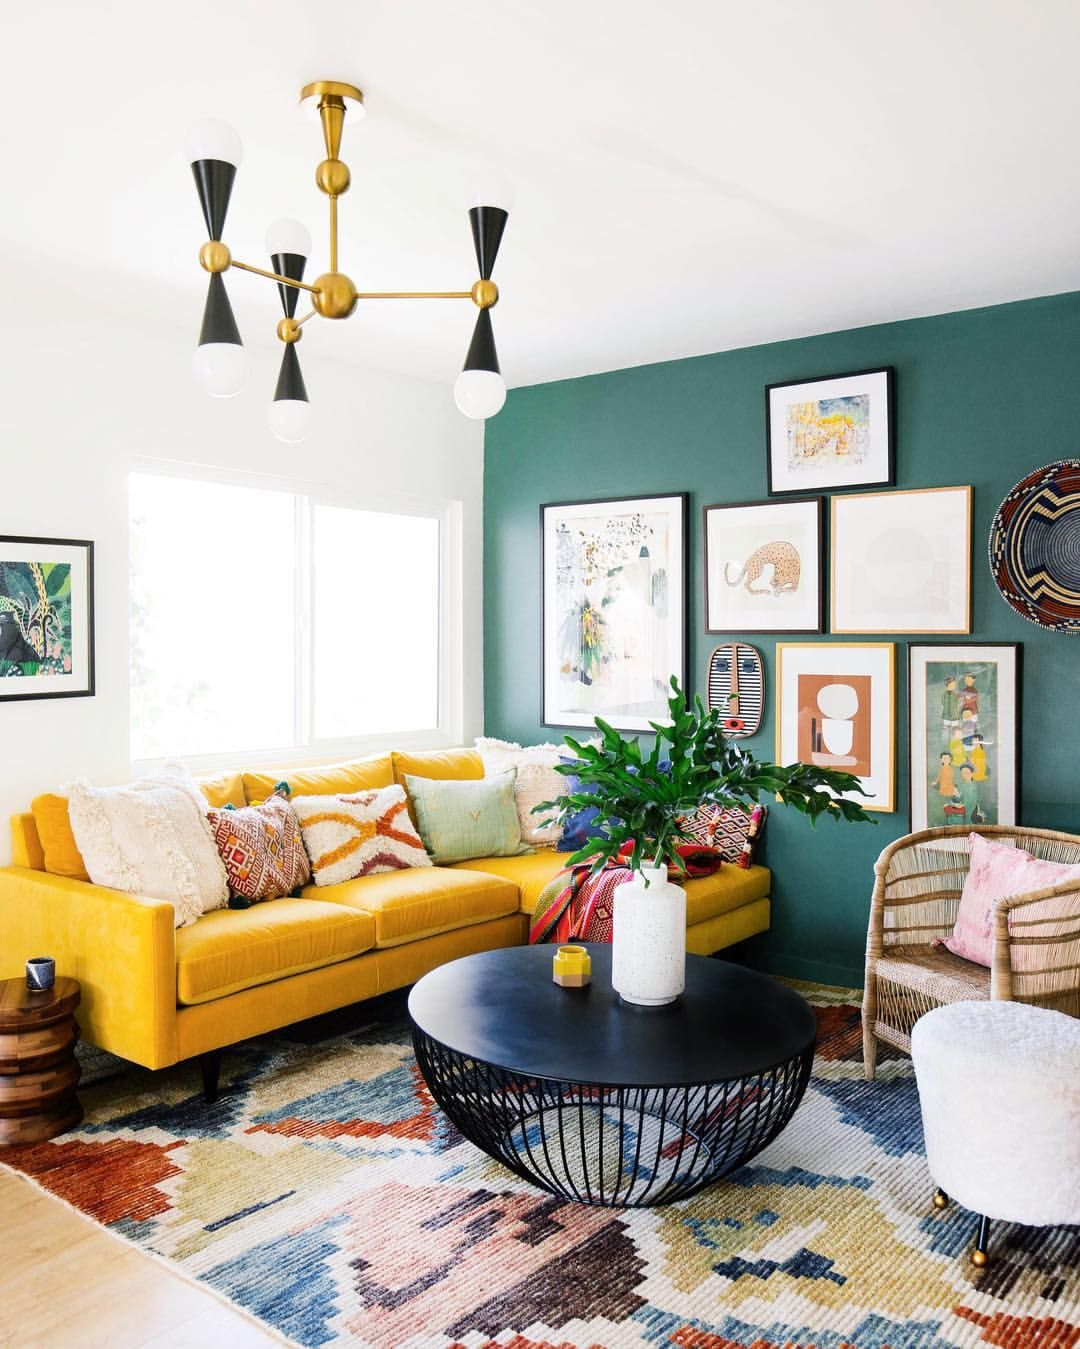 Dabito On Instagram Our New Yellow Sofa Arrived Thank You Roomandboard For Helpi Eclectic Living Room Small Living Room Decor Colorful Eclectic Living Room #yellow #and #green #living #room